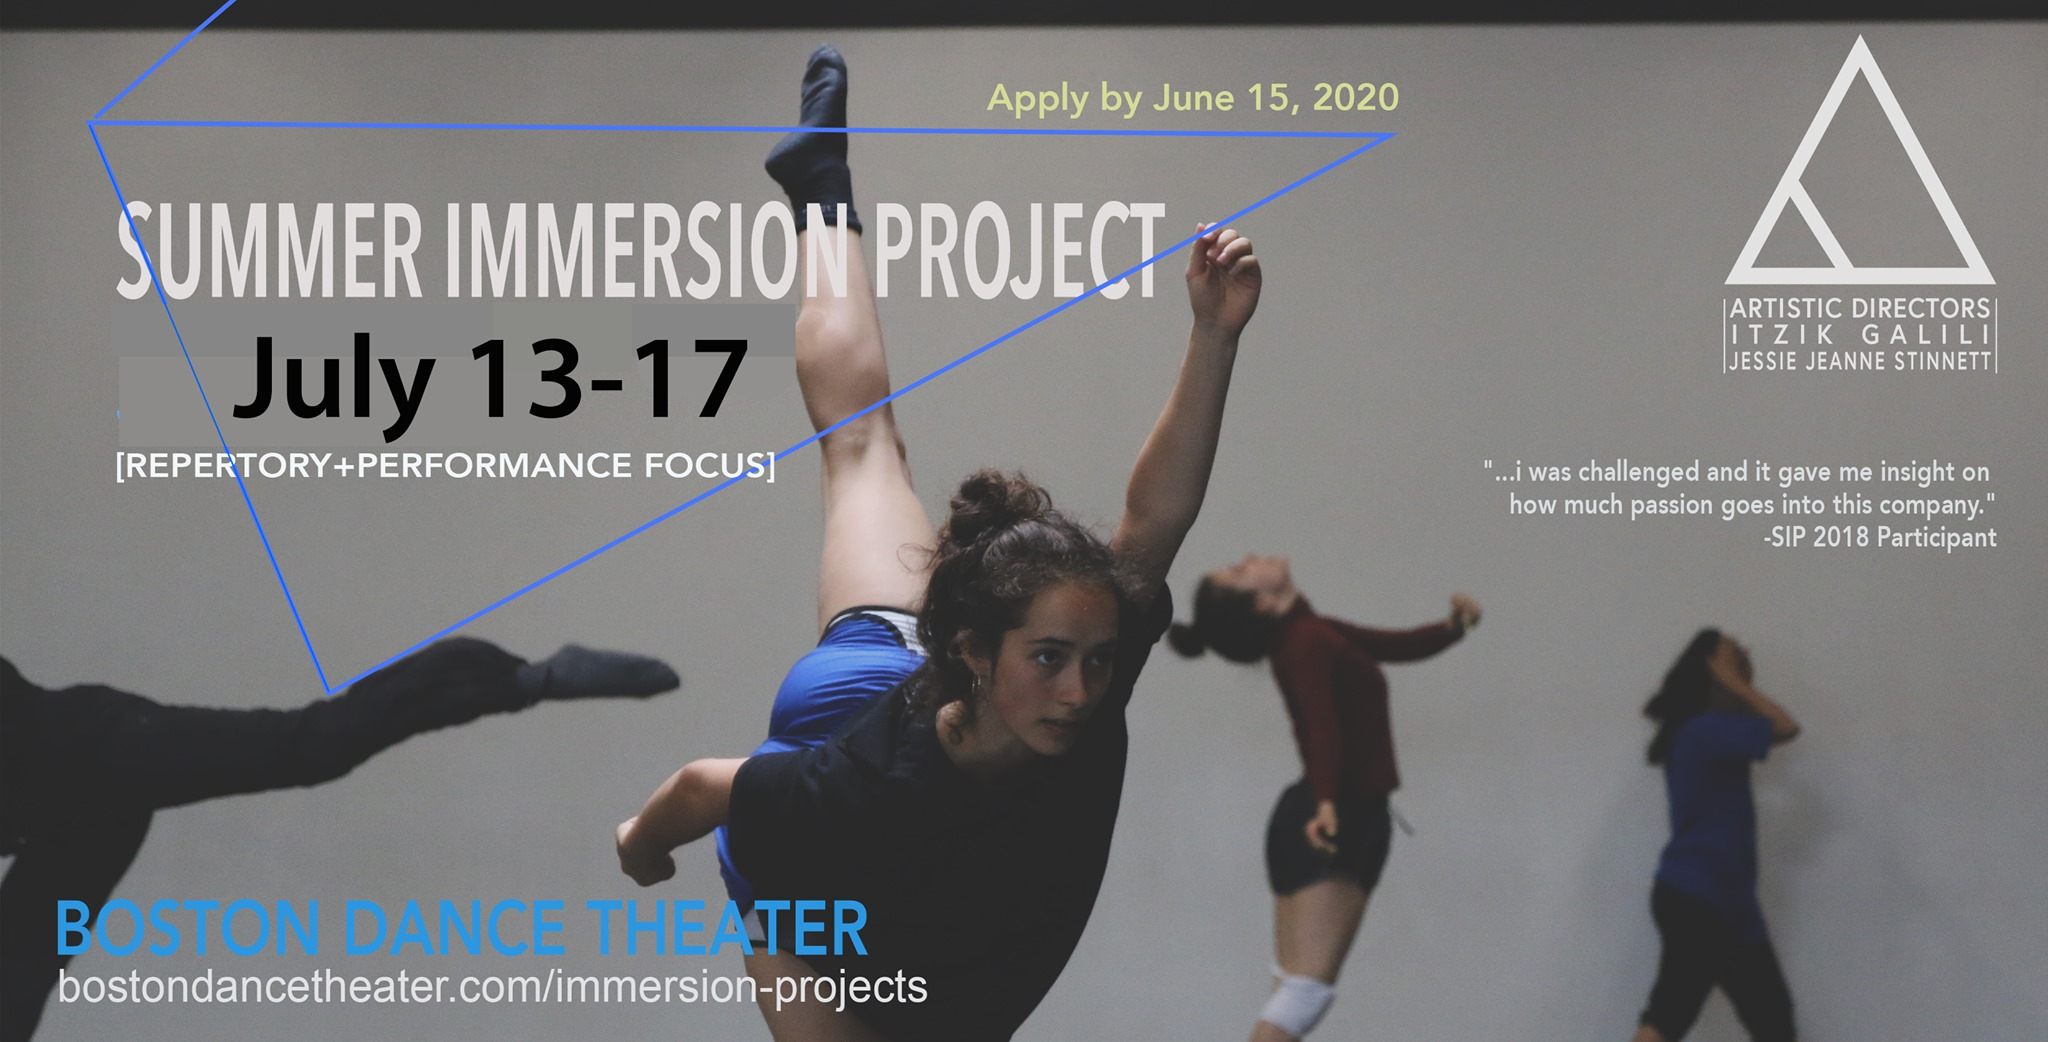 Boston Dance Theater Summer Immersion Project